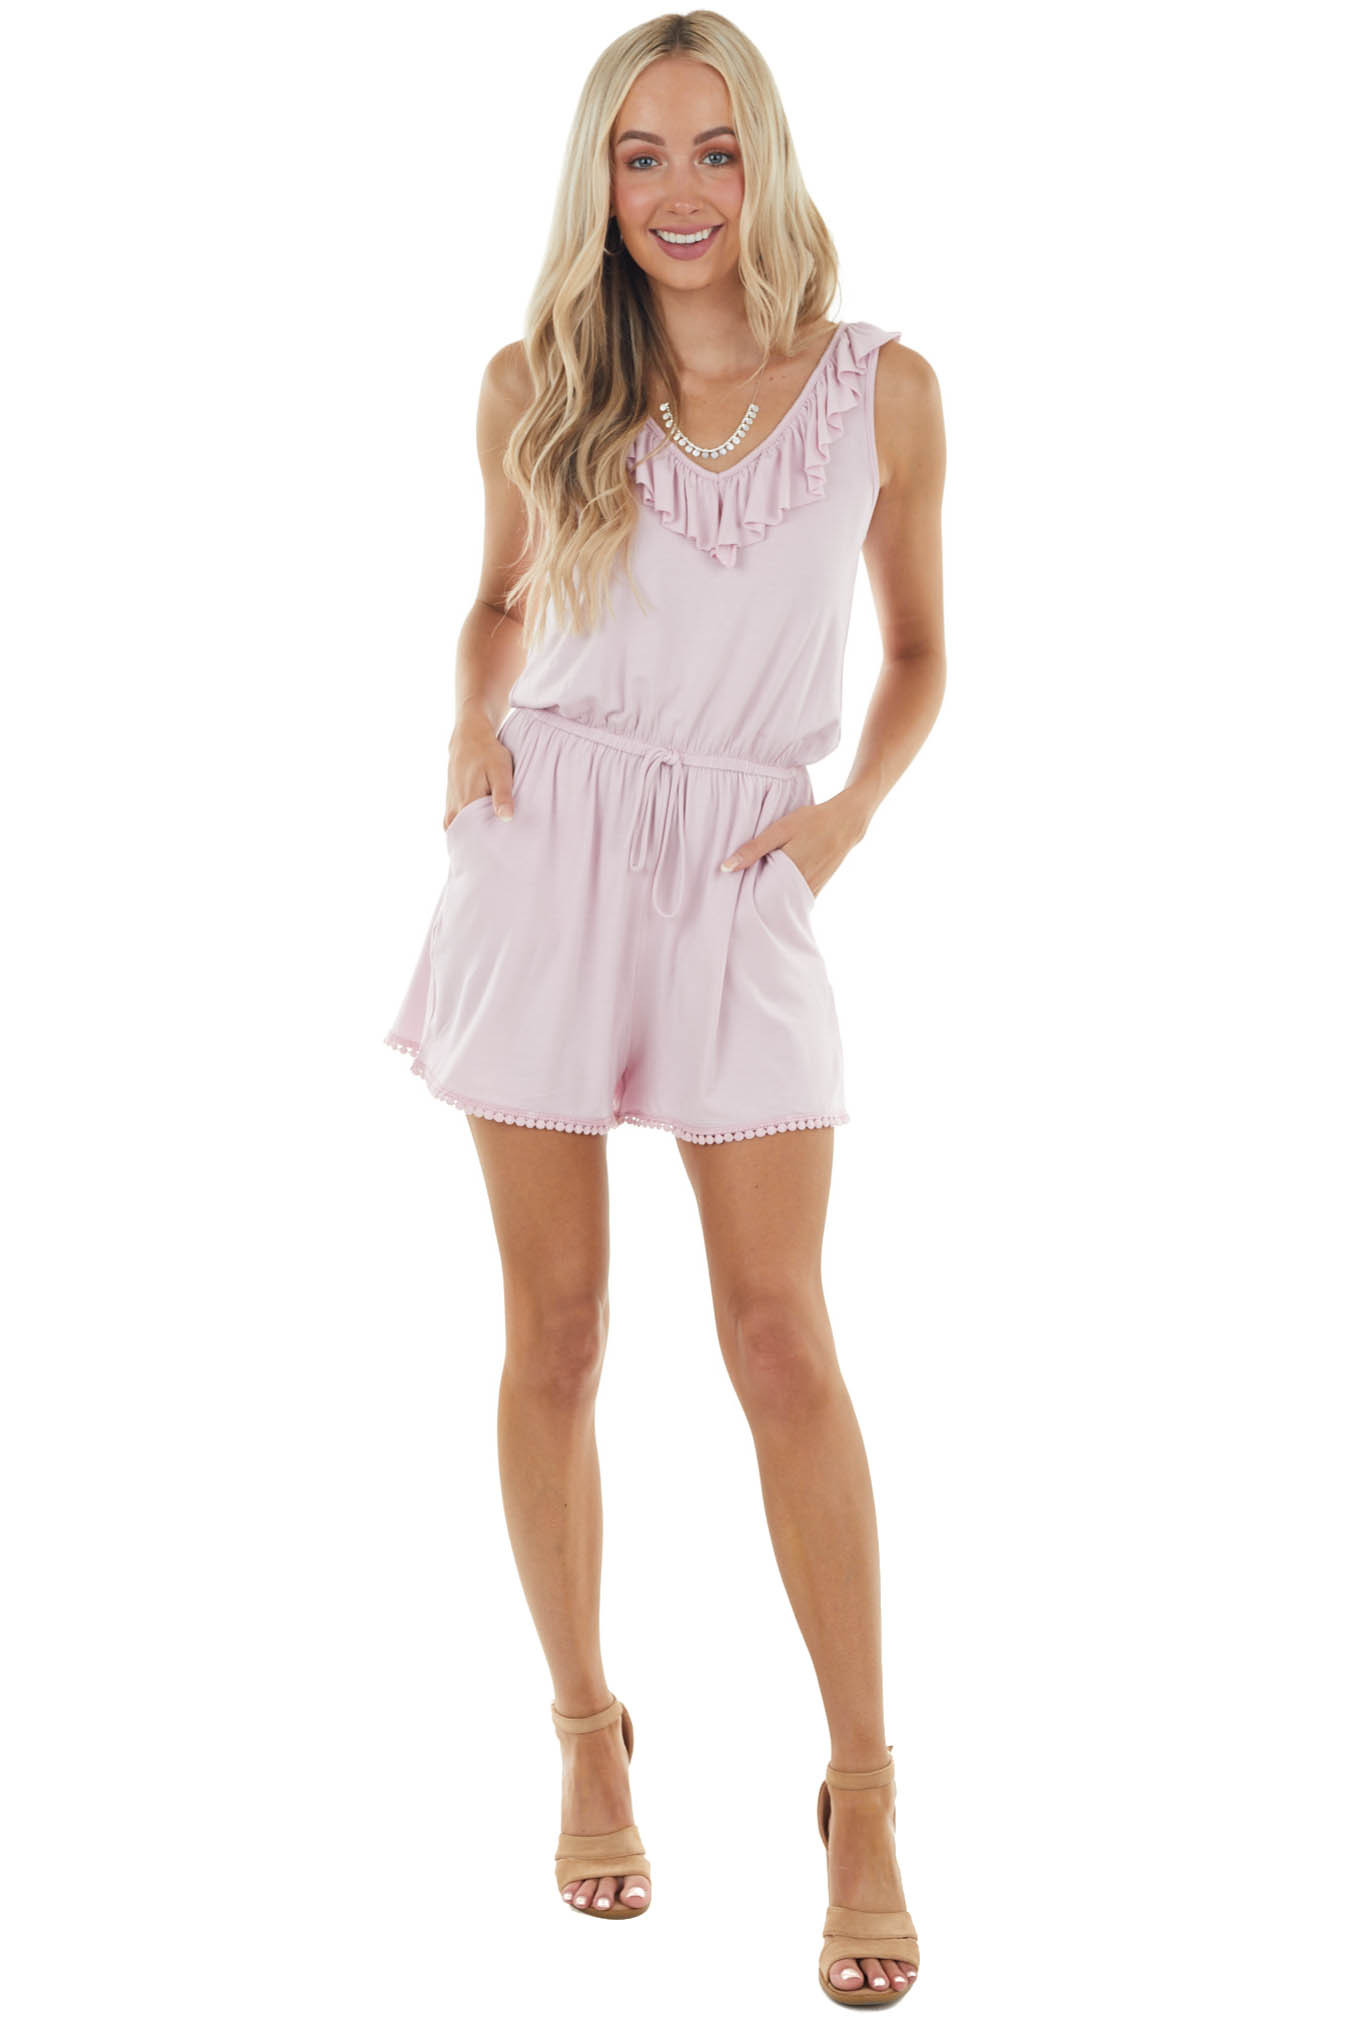 Cherry Blossom Sleeveless Romper with Lace Trim Details